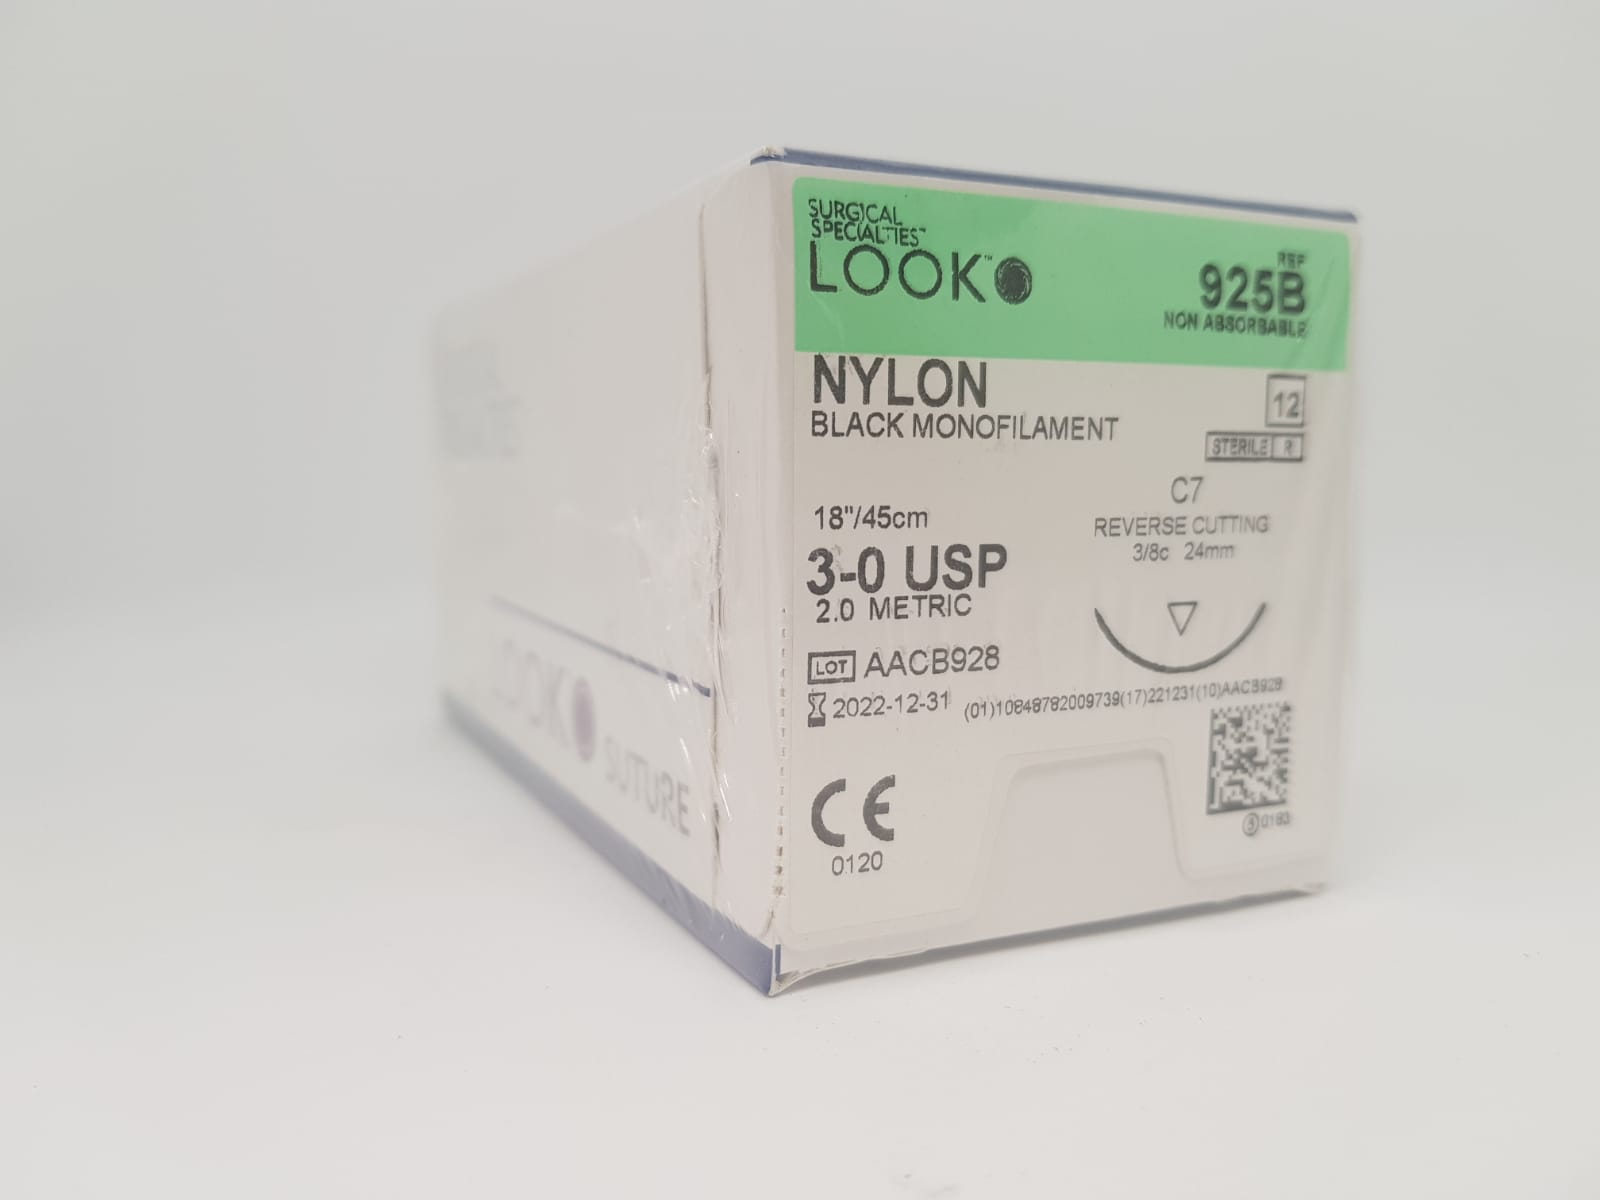 SS LOOK NYLON SUTURE 3/0 24MM 45CM, BOX 12